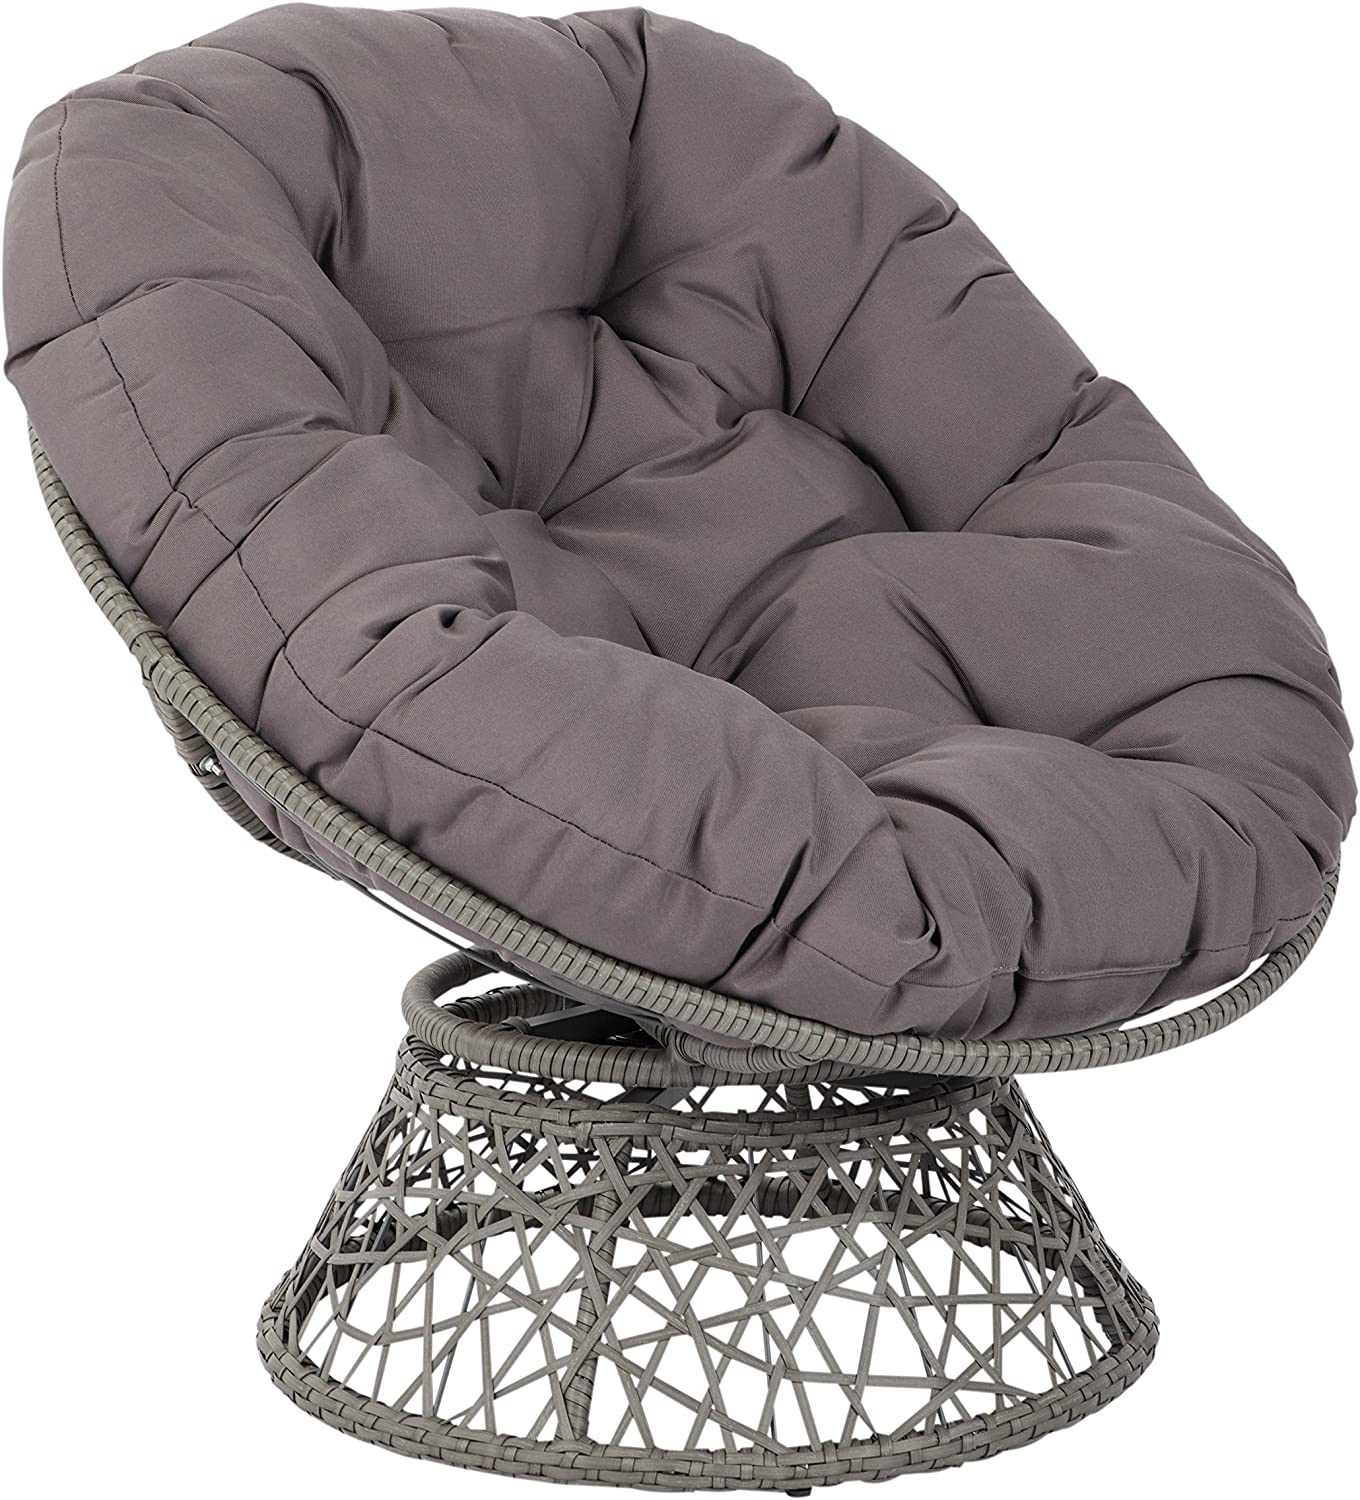 OSP Home Furnishings Papasan Chair with 360-degree Swivel, Grey Cushion Frame: Furniture & Decor